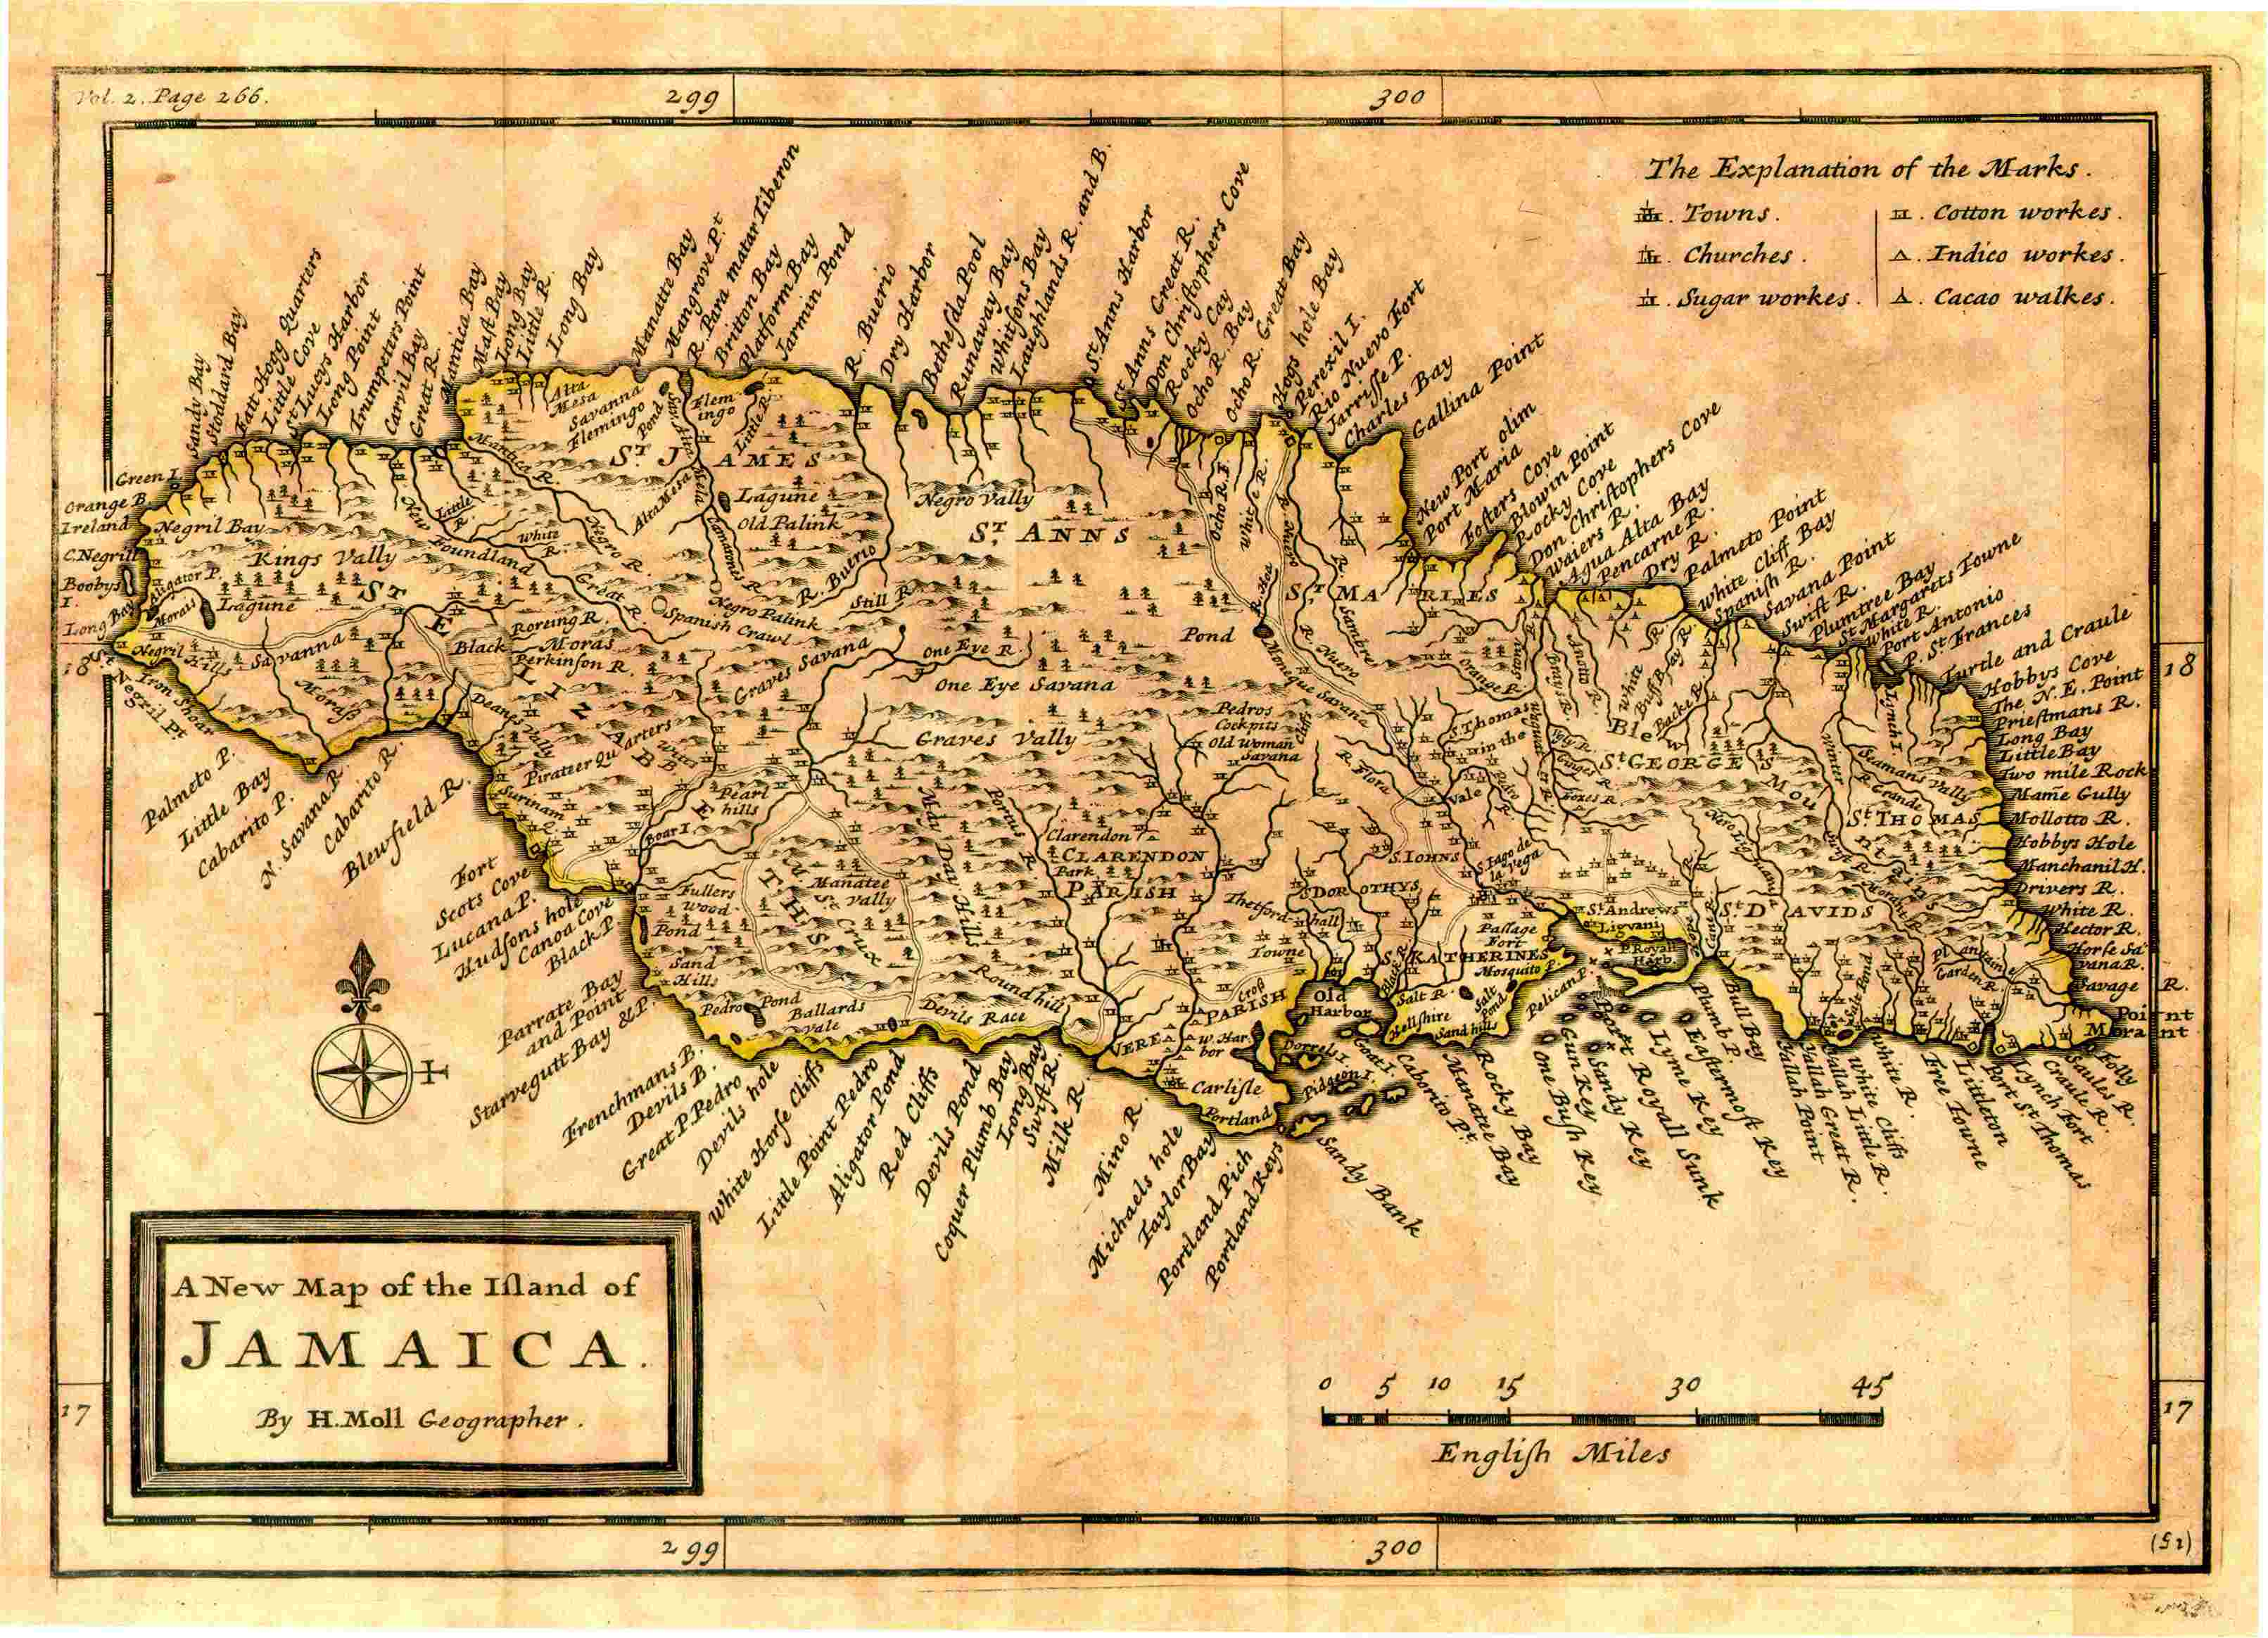 File:Herman Moll. A New Map of the Island of Jamaica. 1717.